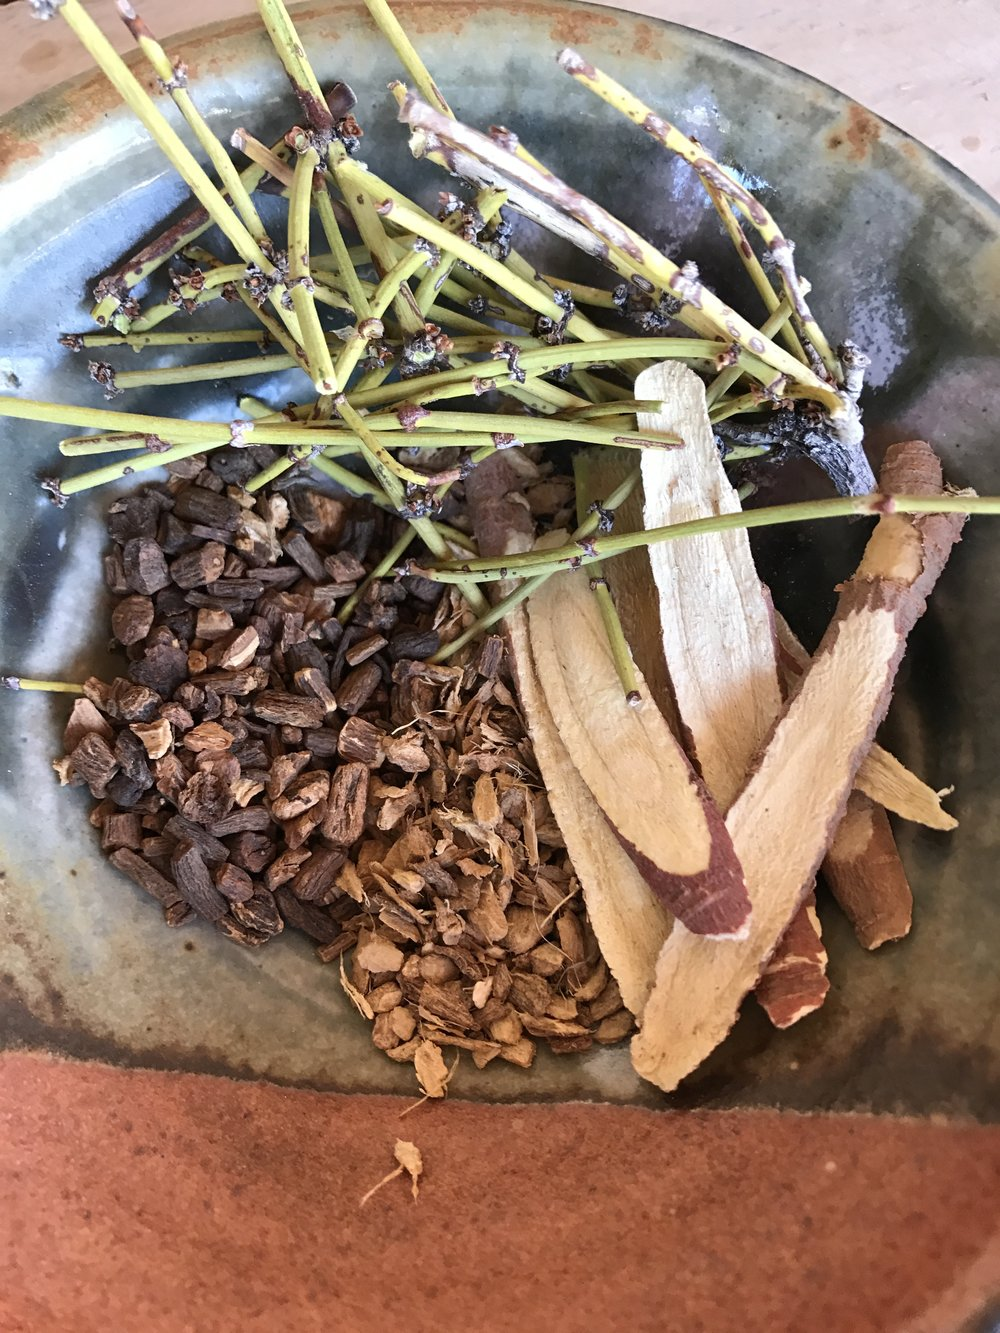 The herbs for the decoction (slow simmer).  Mormon Tea, Dandelion root, Ginger root, and Licorice root.